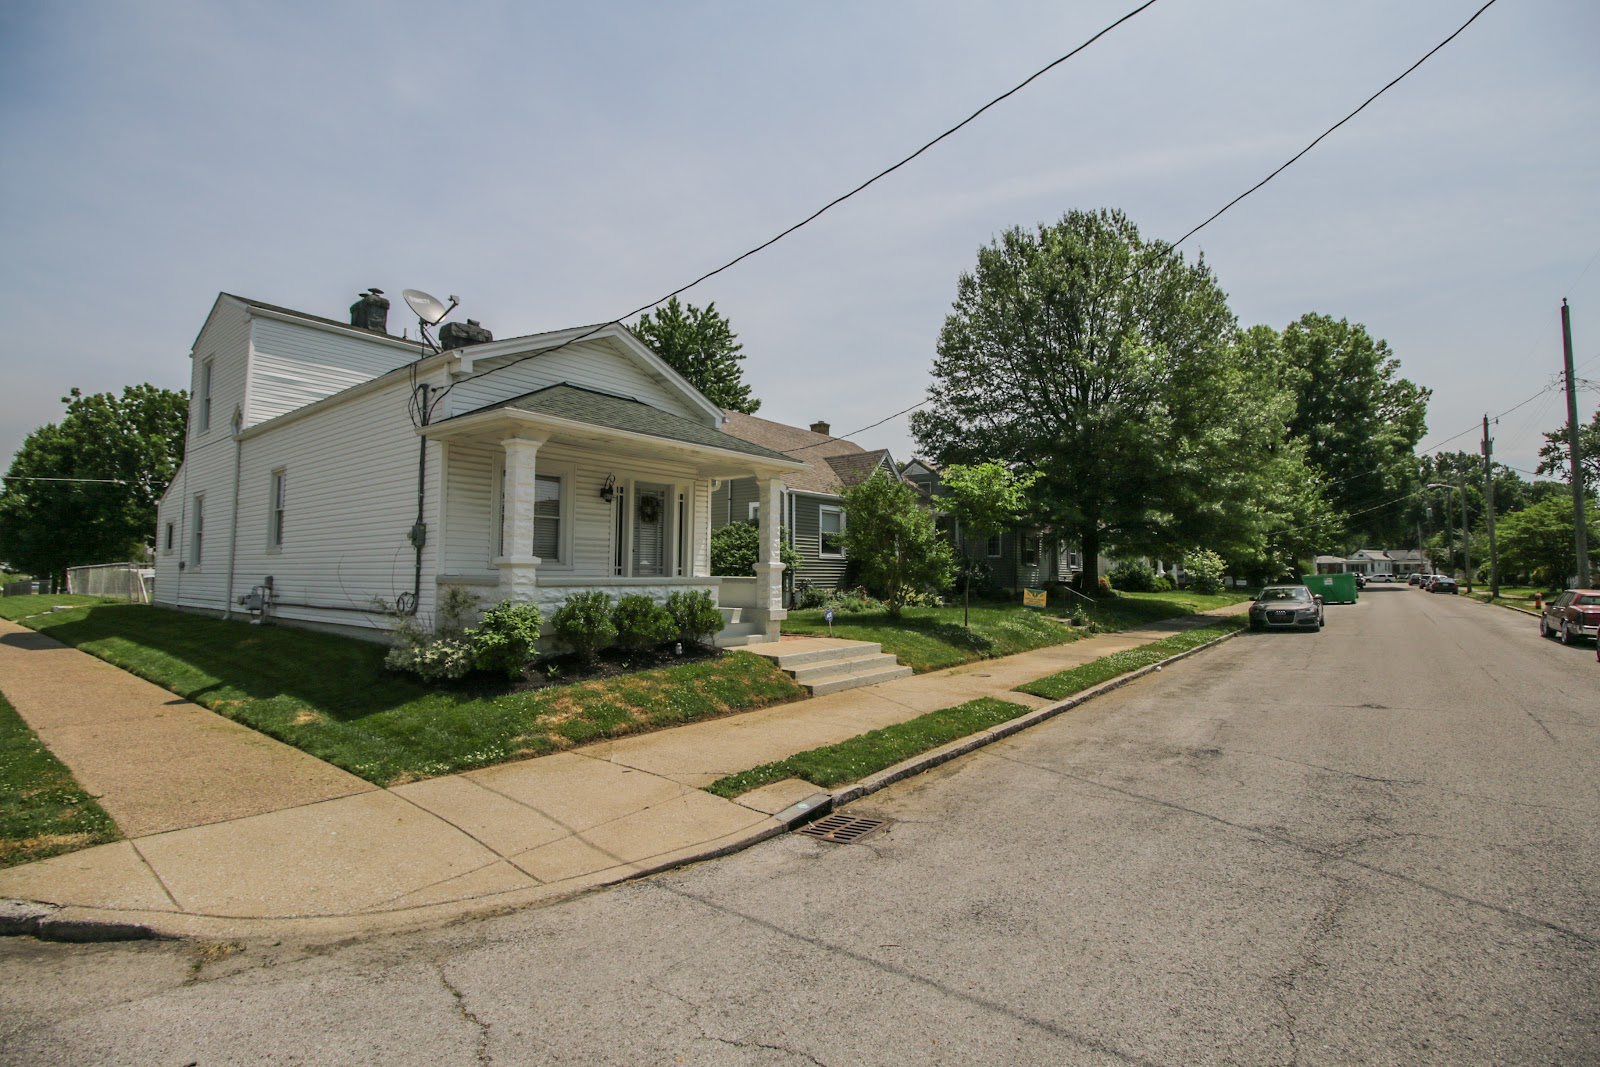 Information on house for sale on 1101 Forrest St Louisville KY 40217